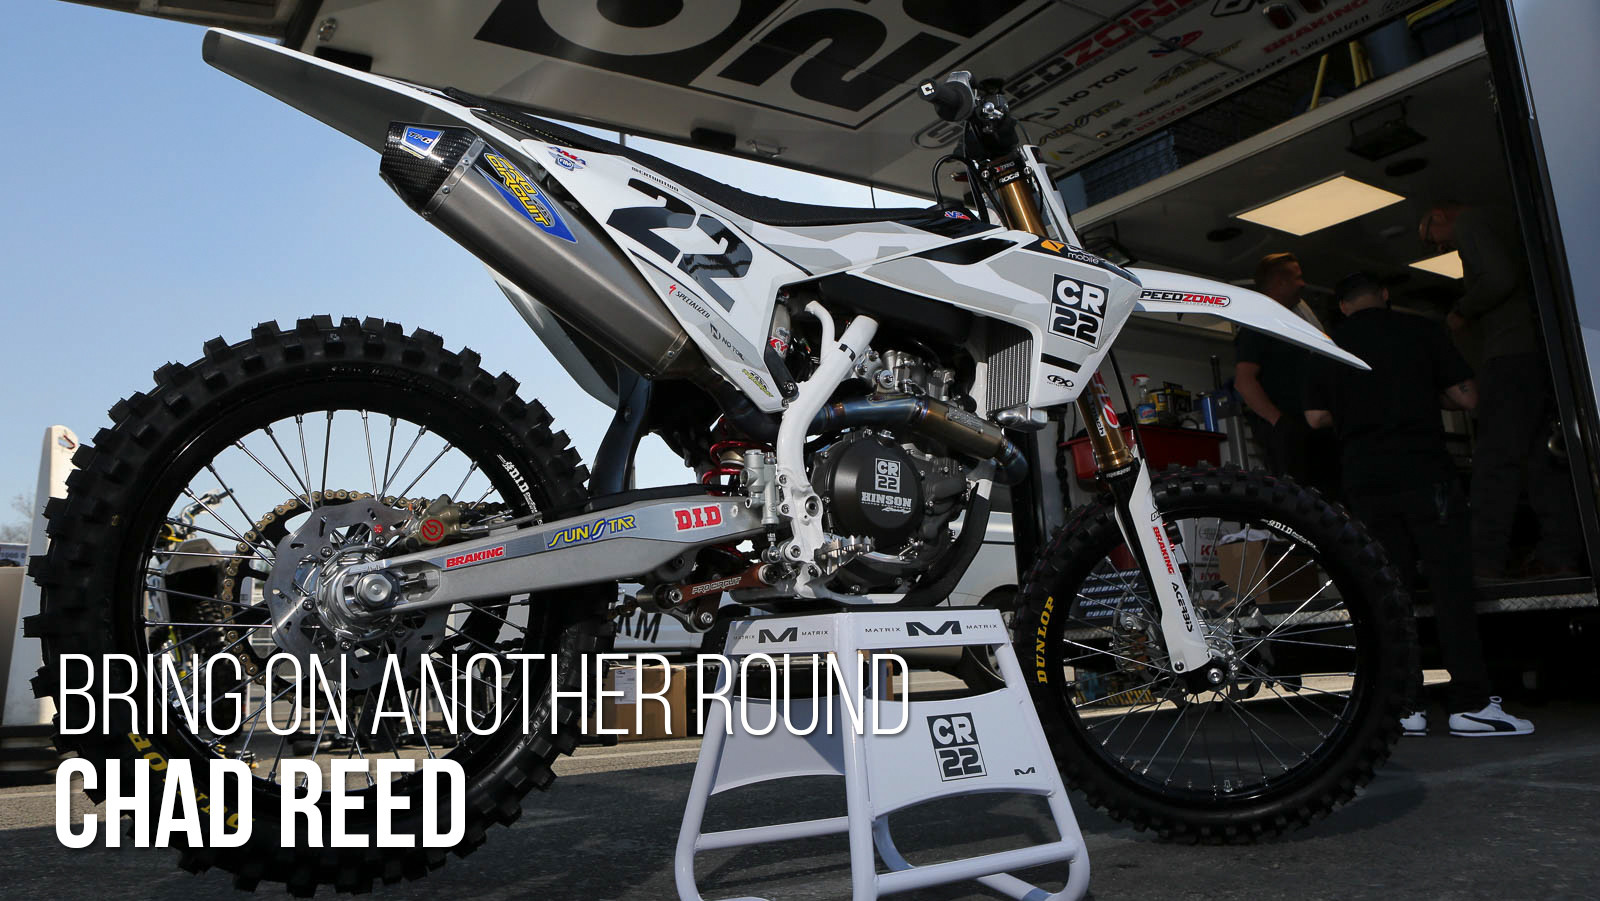 Chad Reed: Bring On Another Round